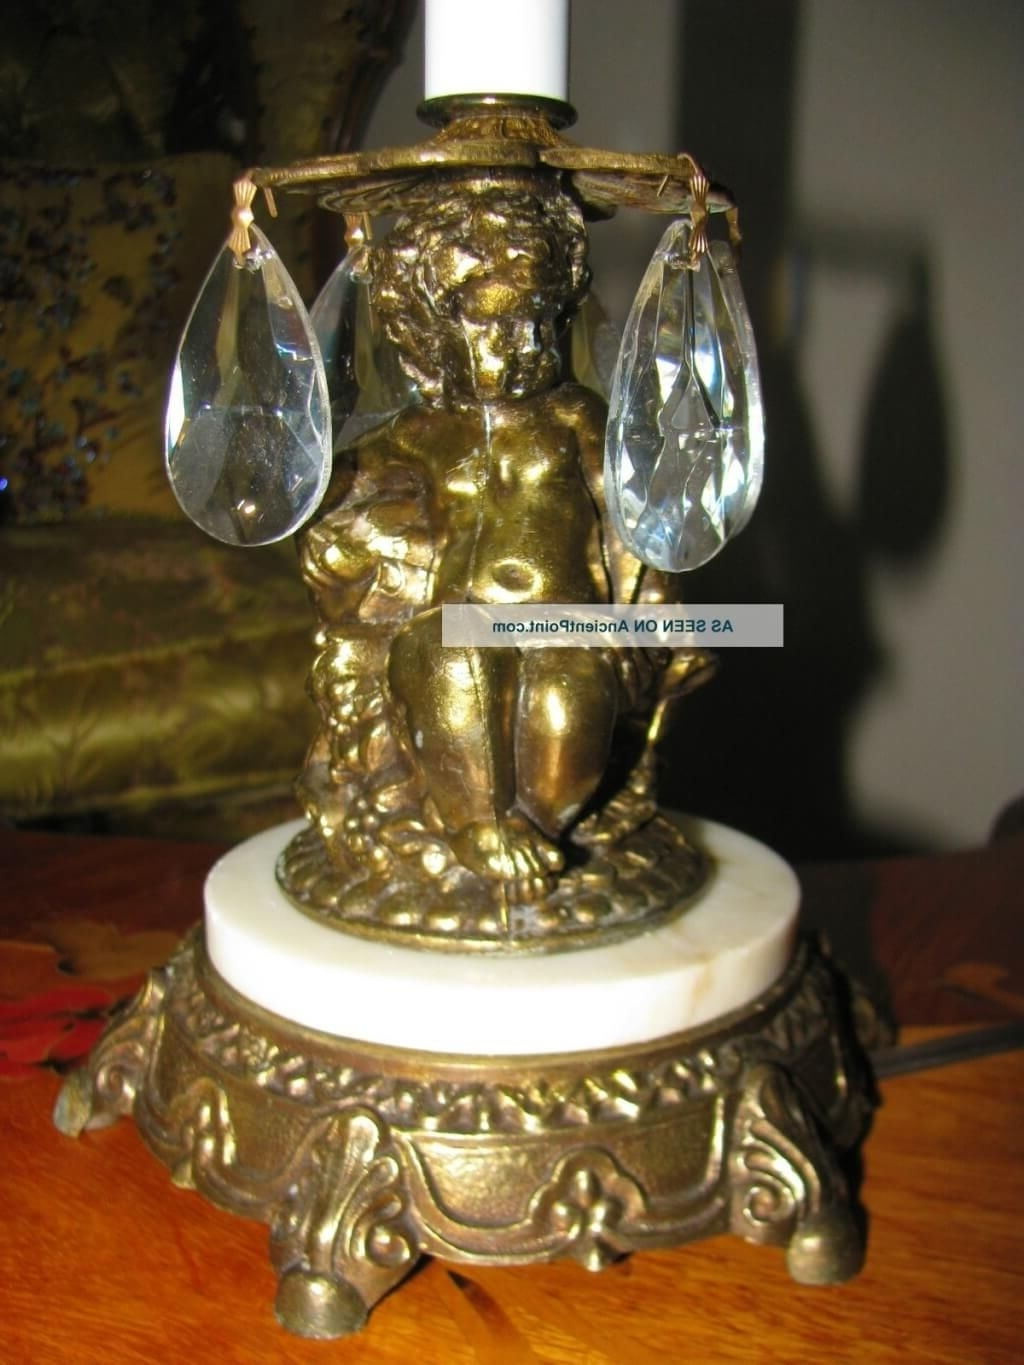 Mini Chandelier Table Lamps For Current Lighting: Antique Mini Chandelier Table Lamp With Brass Statue Base (View 8 of 15)